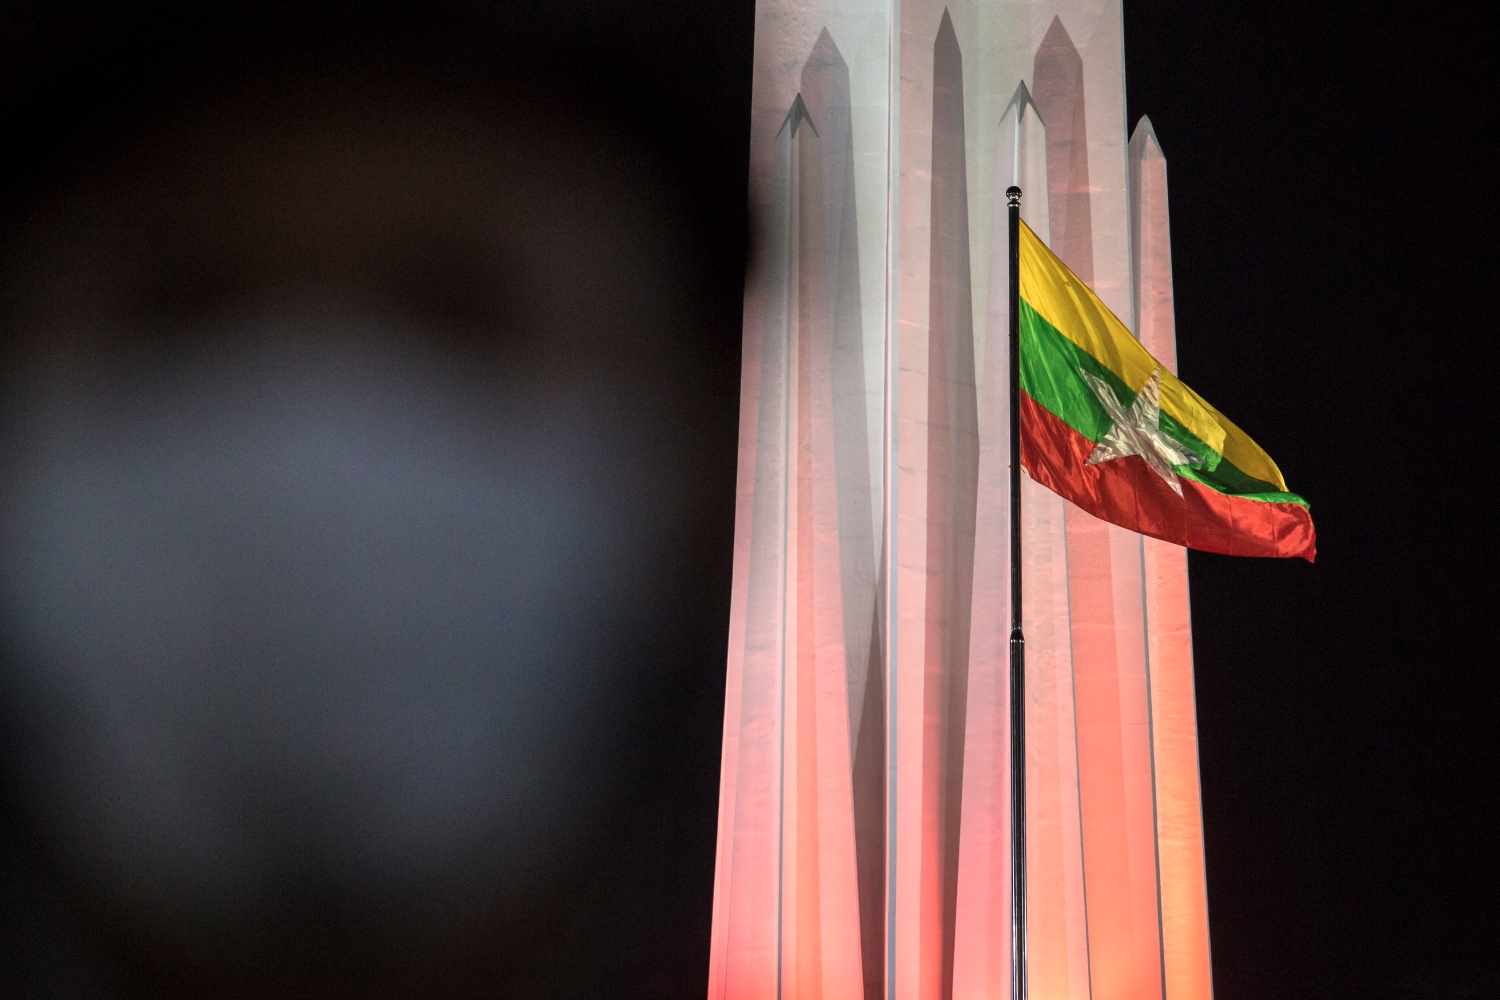 The national flag flutters during a ceremony to mark Myanmar's 73rd Independence Day in Yangon on January 4. (AFP)